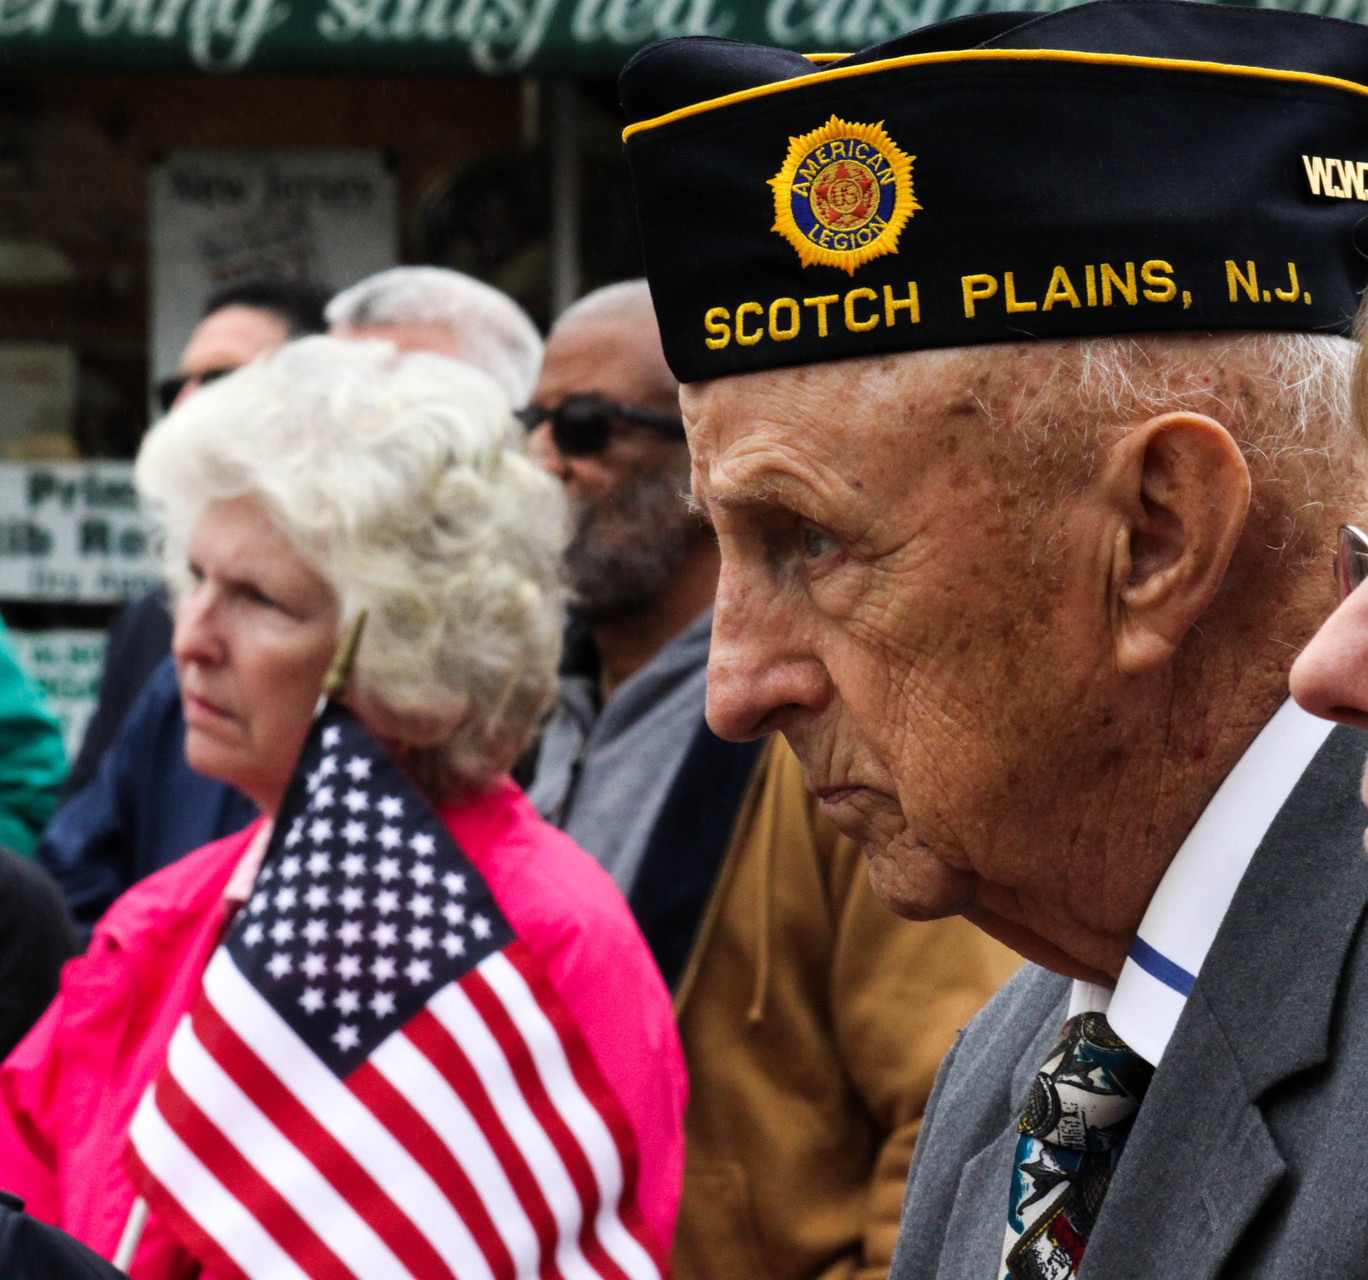 Veterans are often the first to respond and volunteer in our community